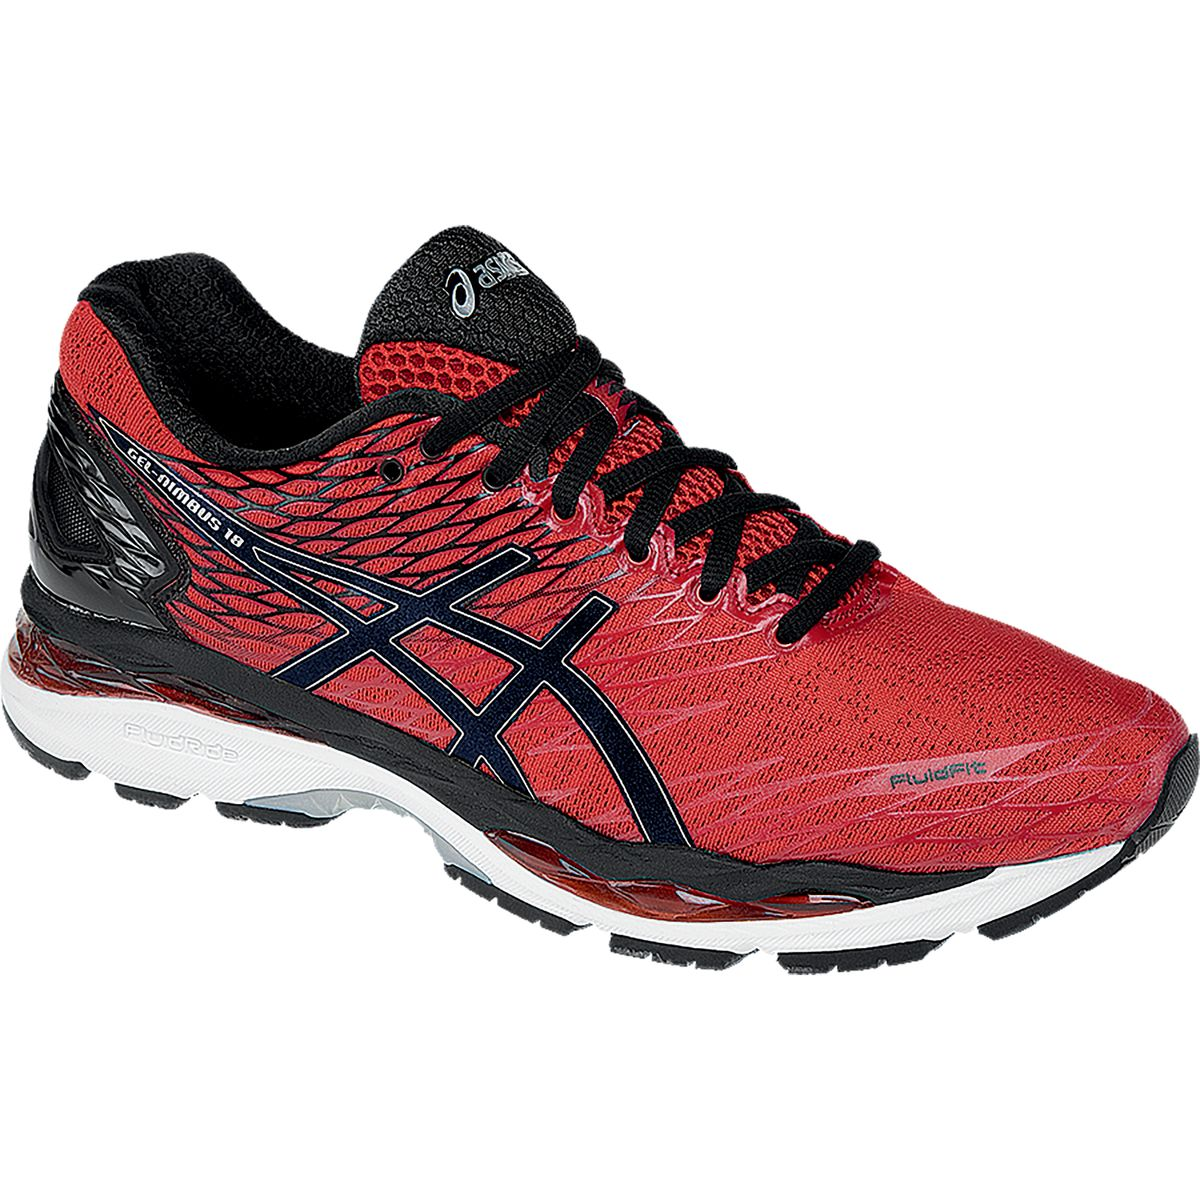 asics gel nimbus 18 running shoe men 39 s competitive cyclist. Black Bedroom Furniture Sets. Home Design Ideas